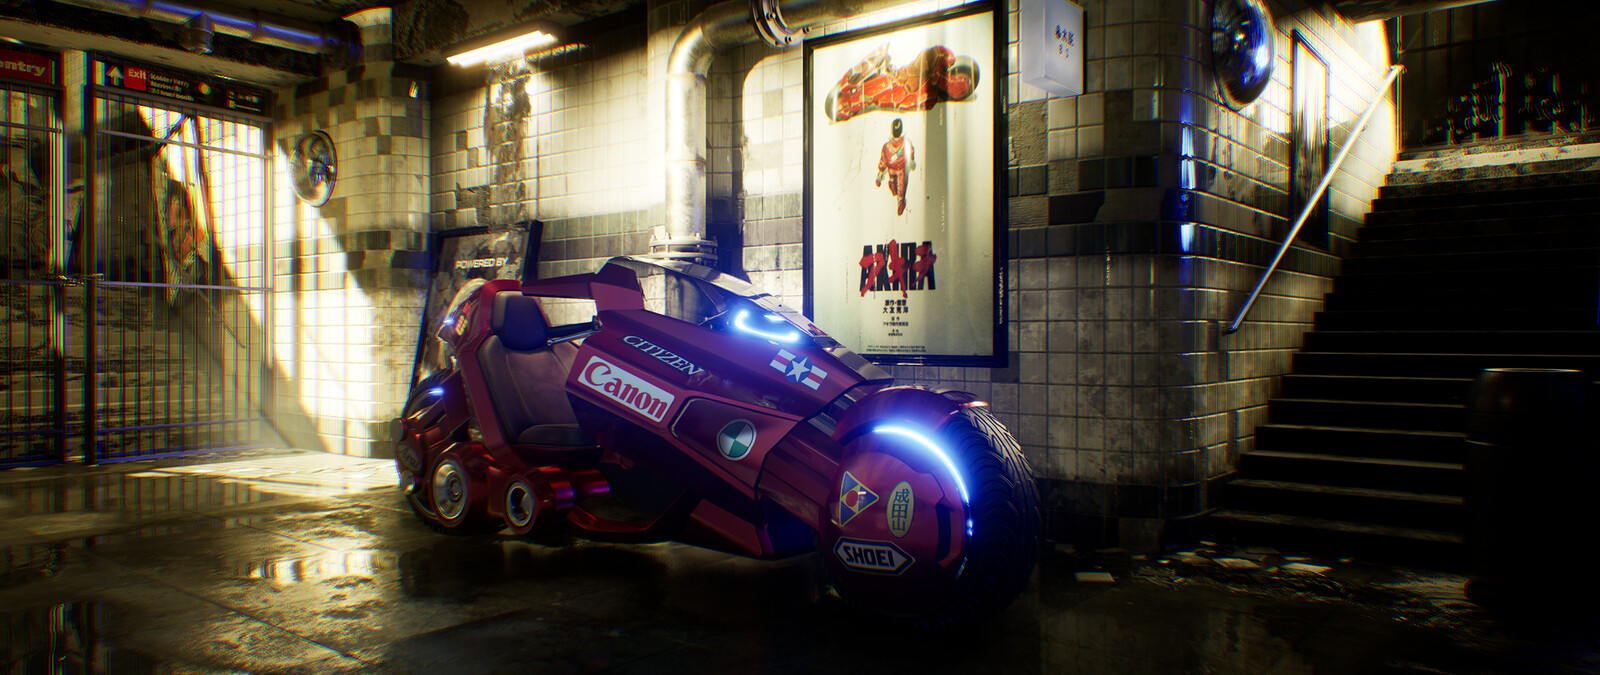 My Akira bike interpretation